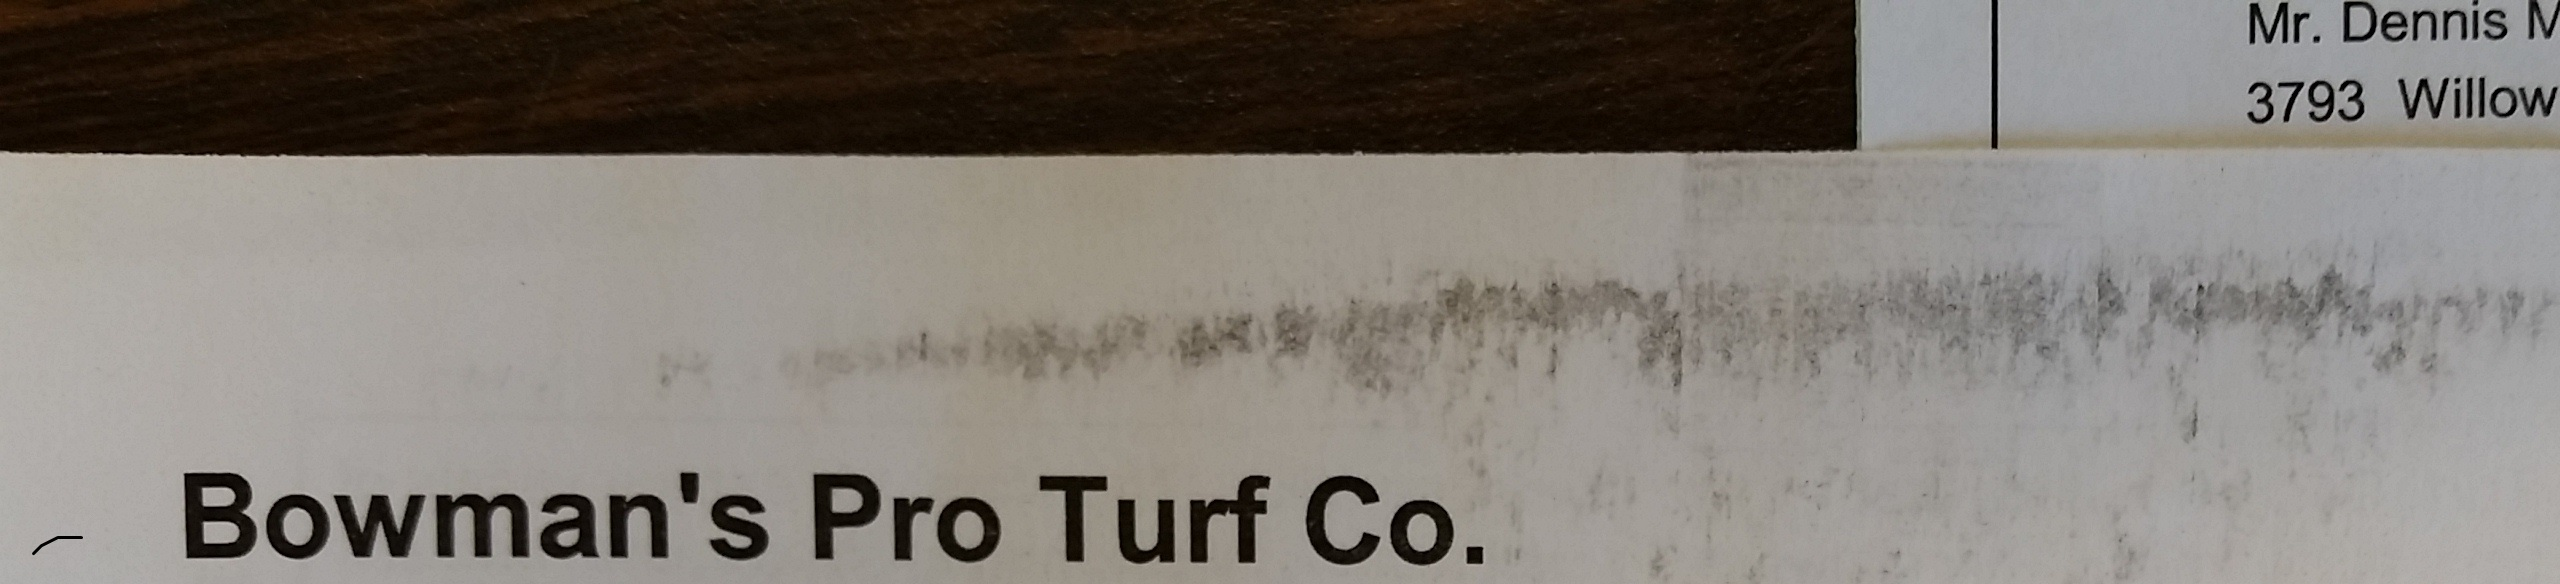 Bowmans Pro Turf Paper Issue.jpg